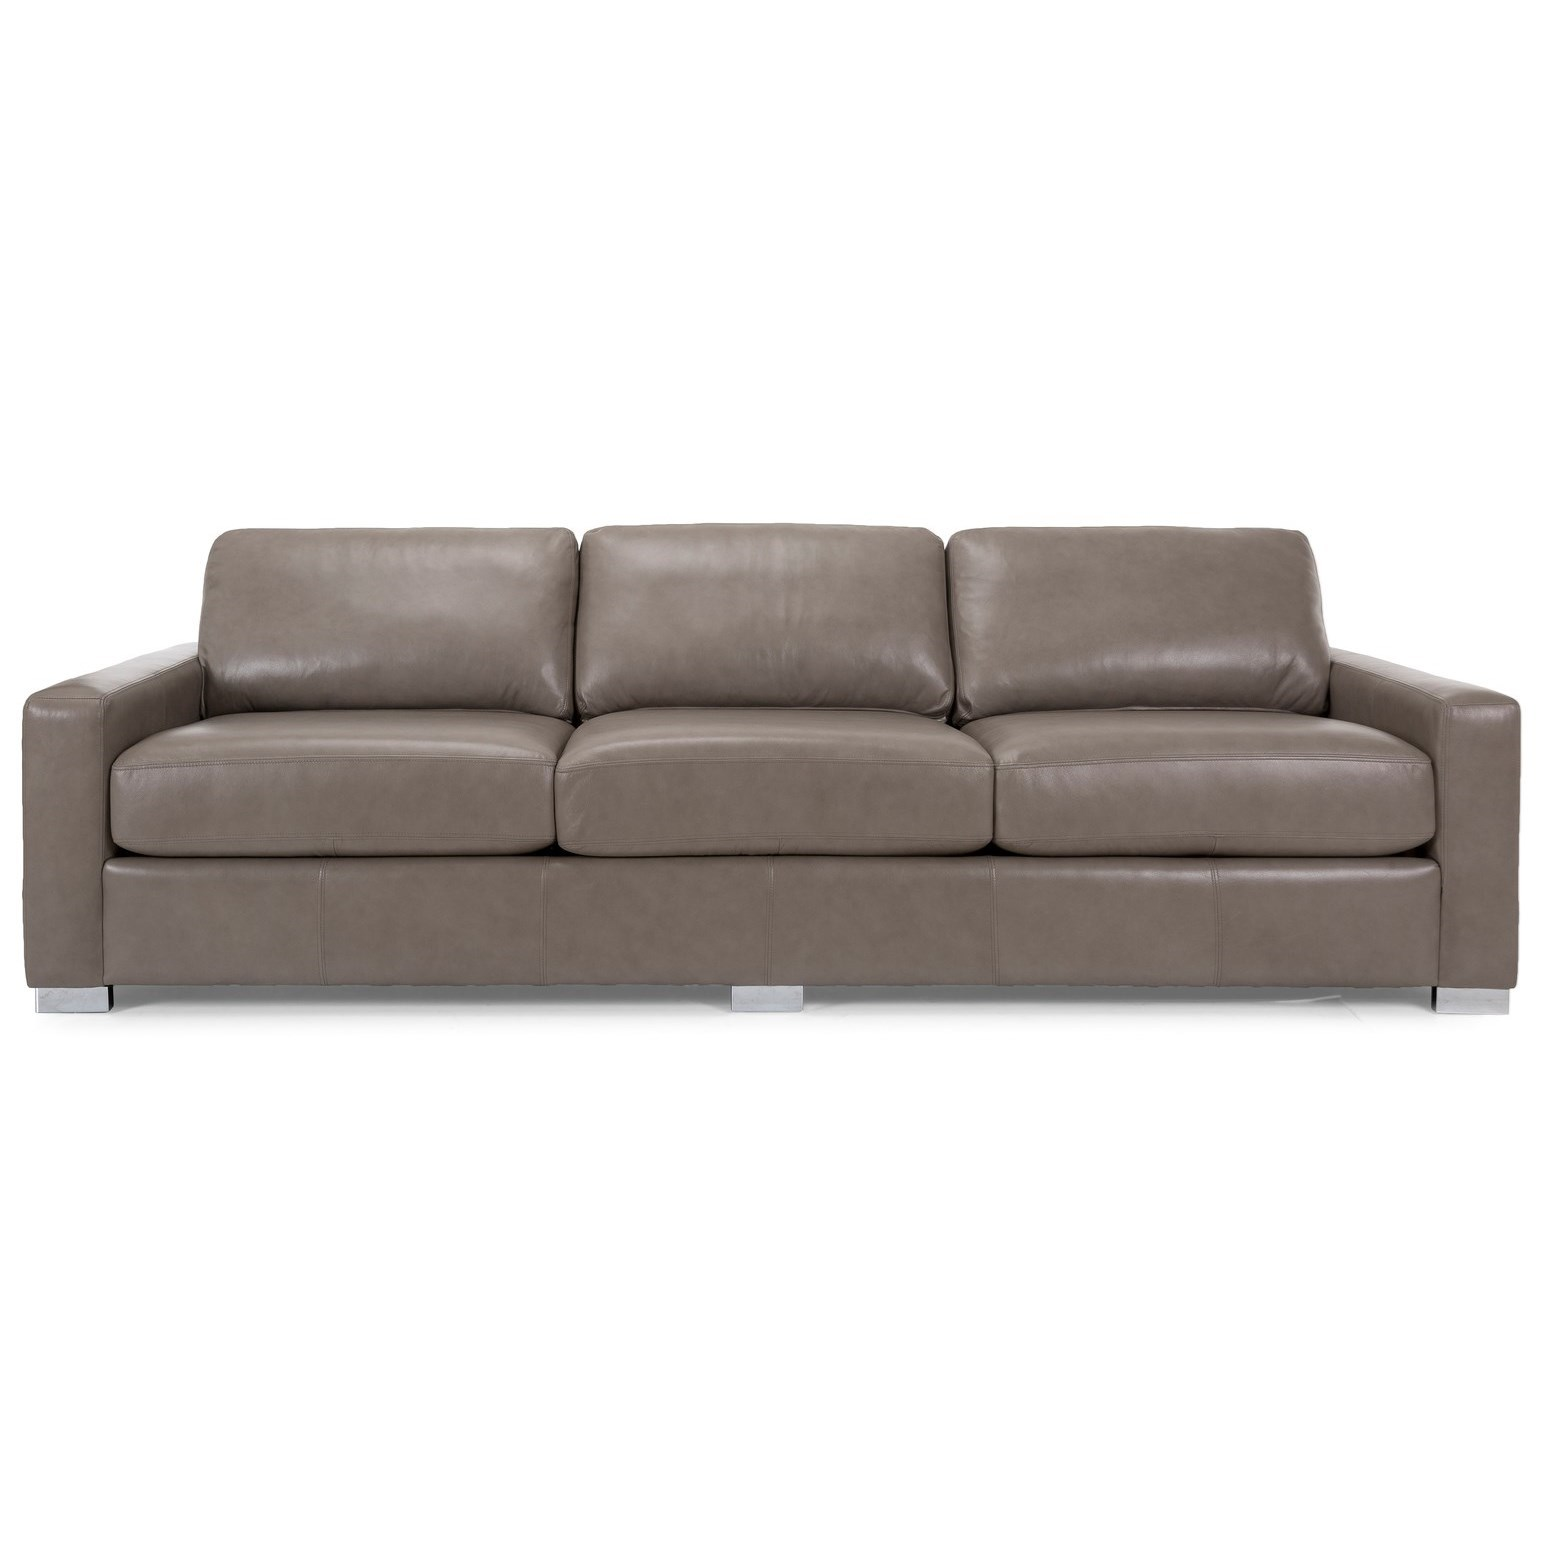 "2591 102"" Sofa by Decor-Rest at Reid's Furniture"